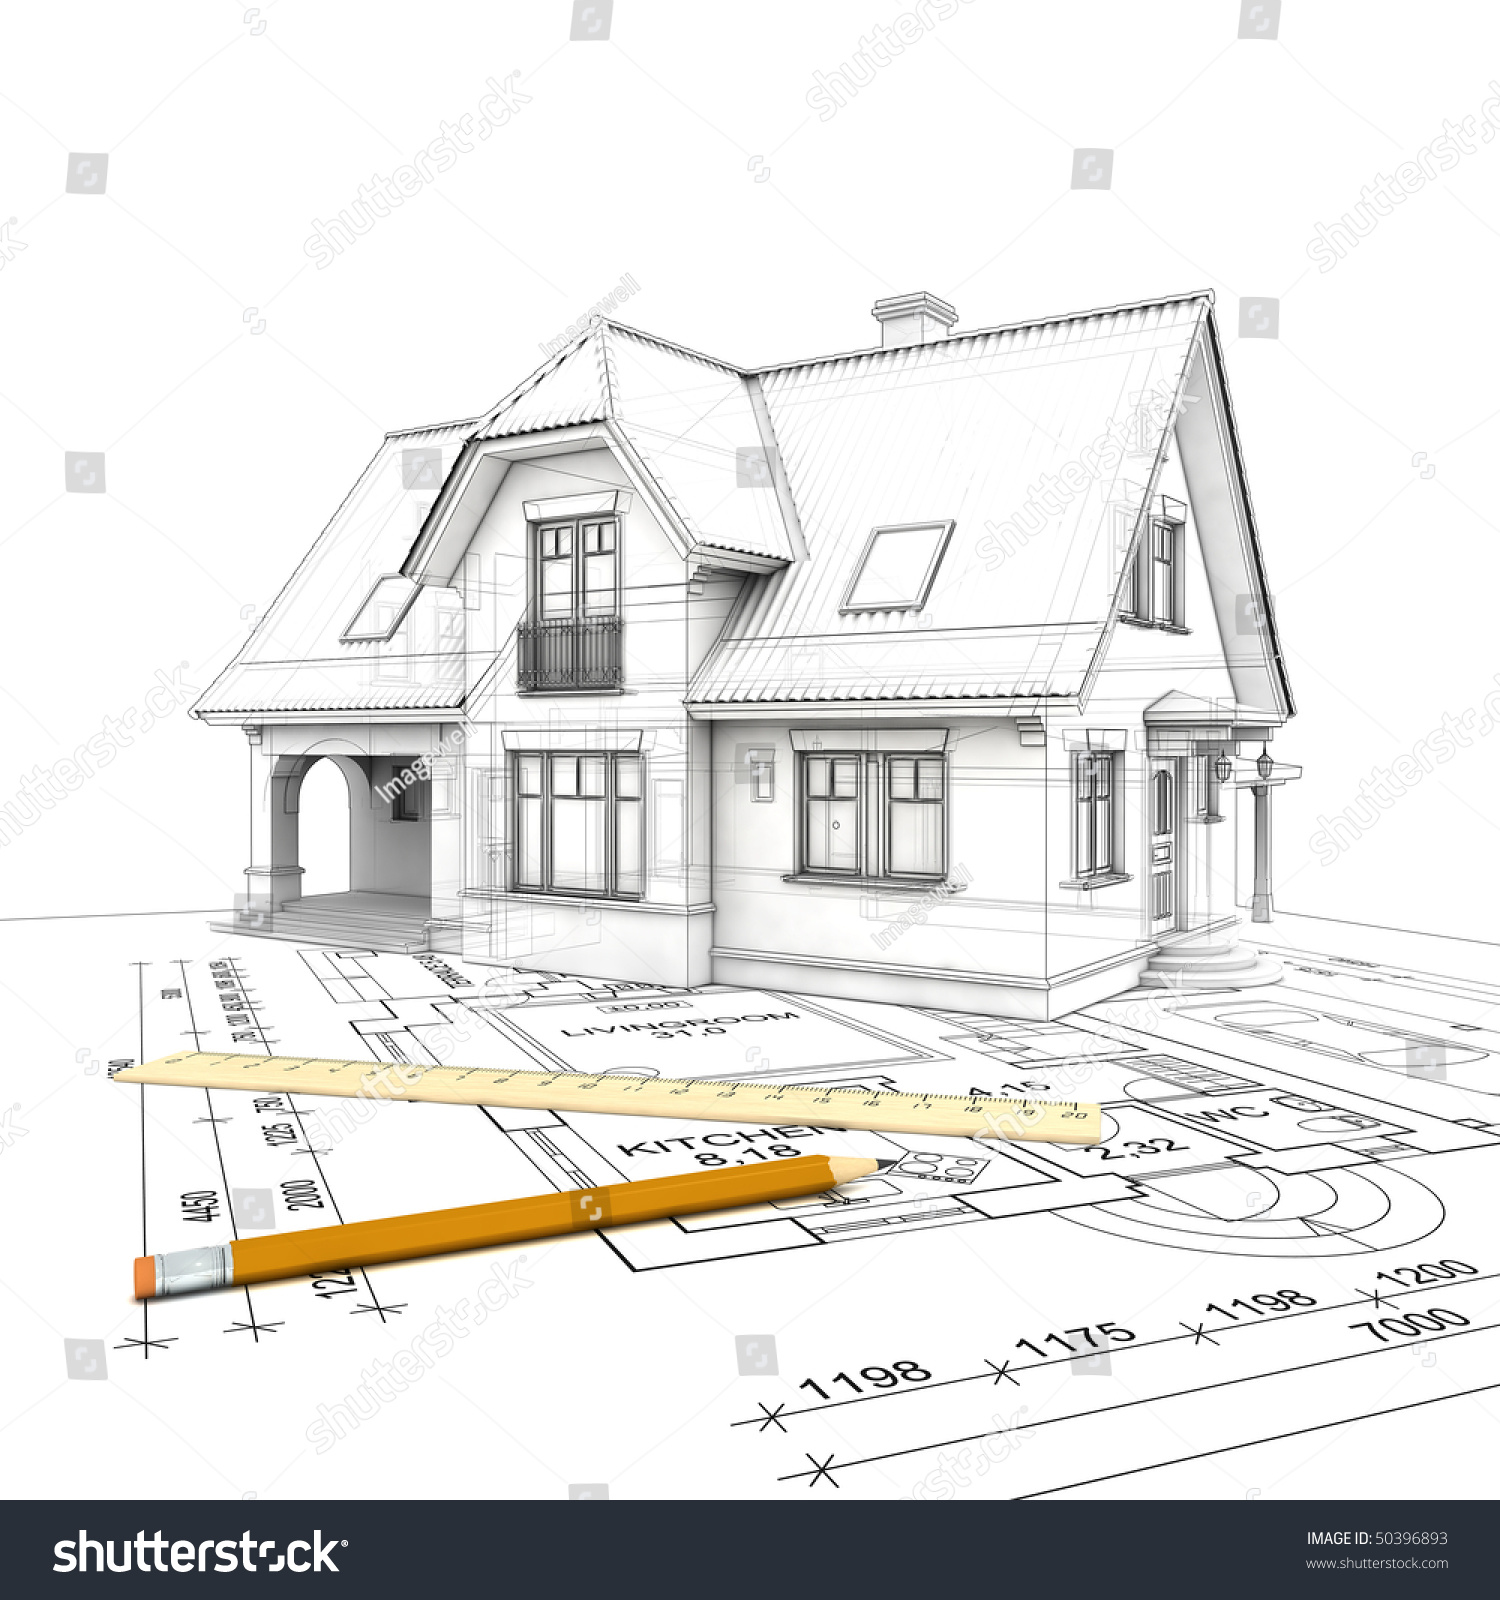 Stylized house model floor plan ruler stock illustration for Stock house plans